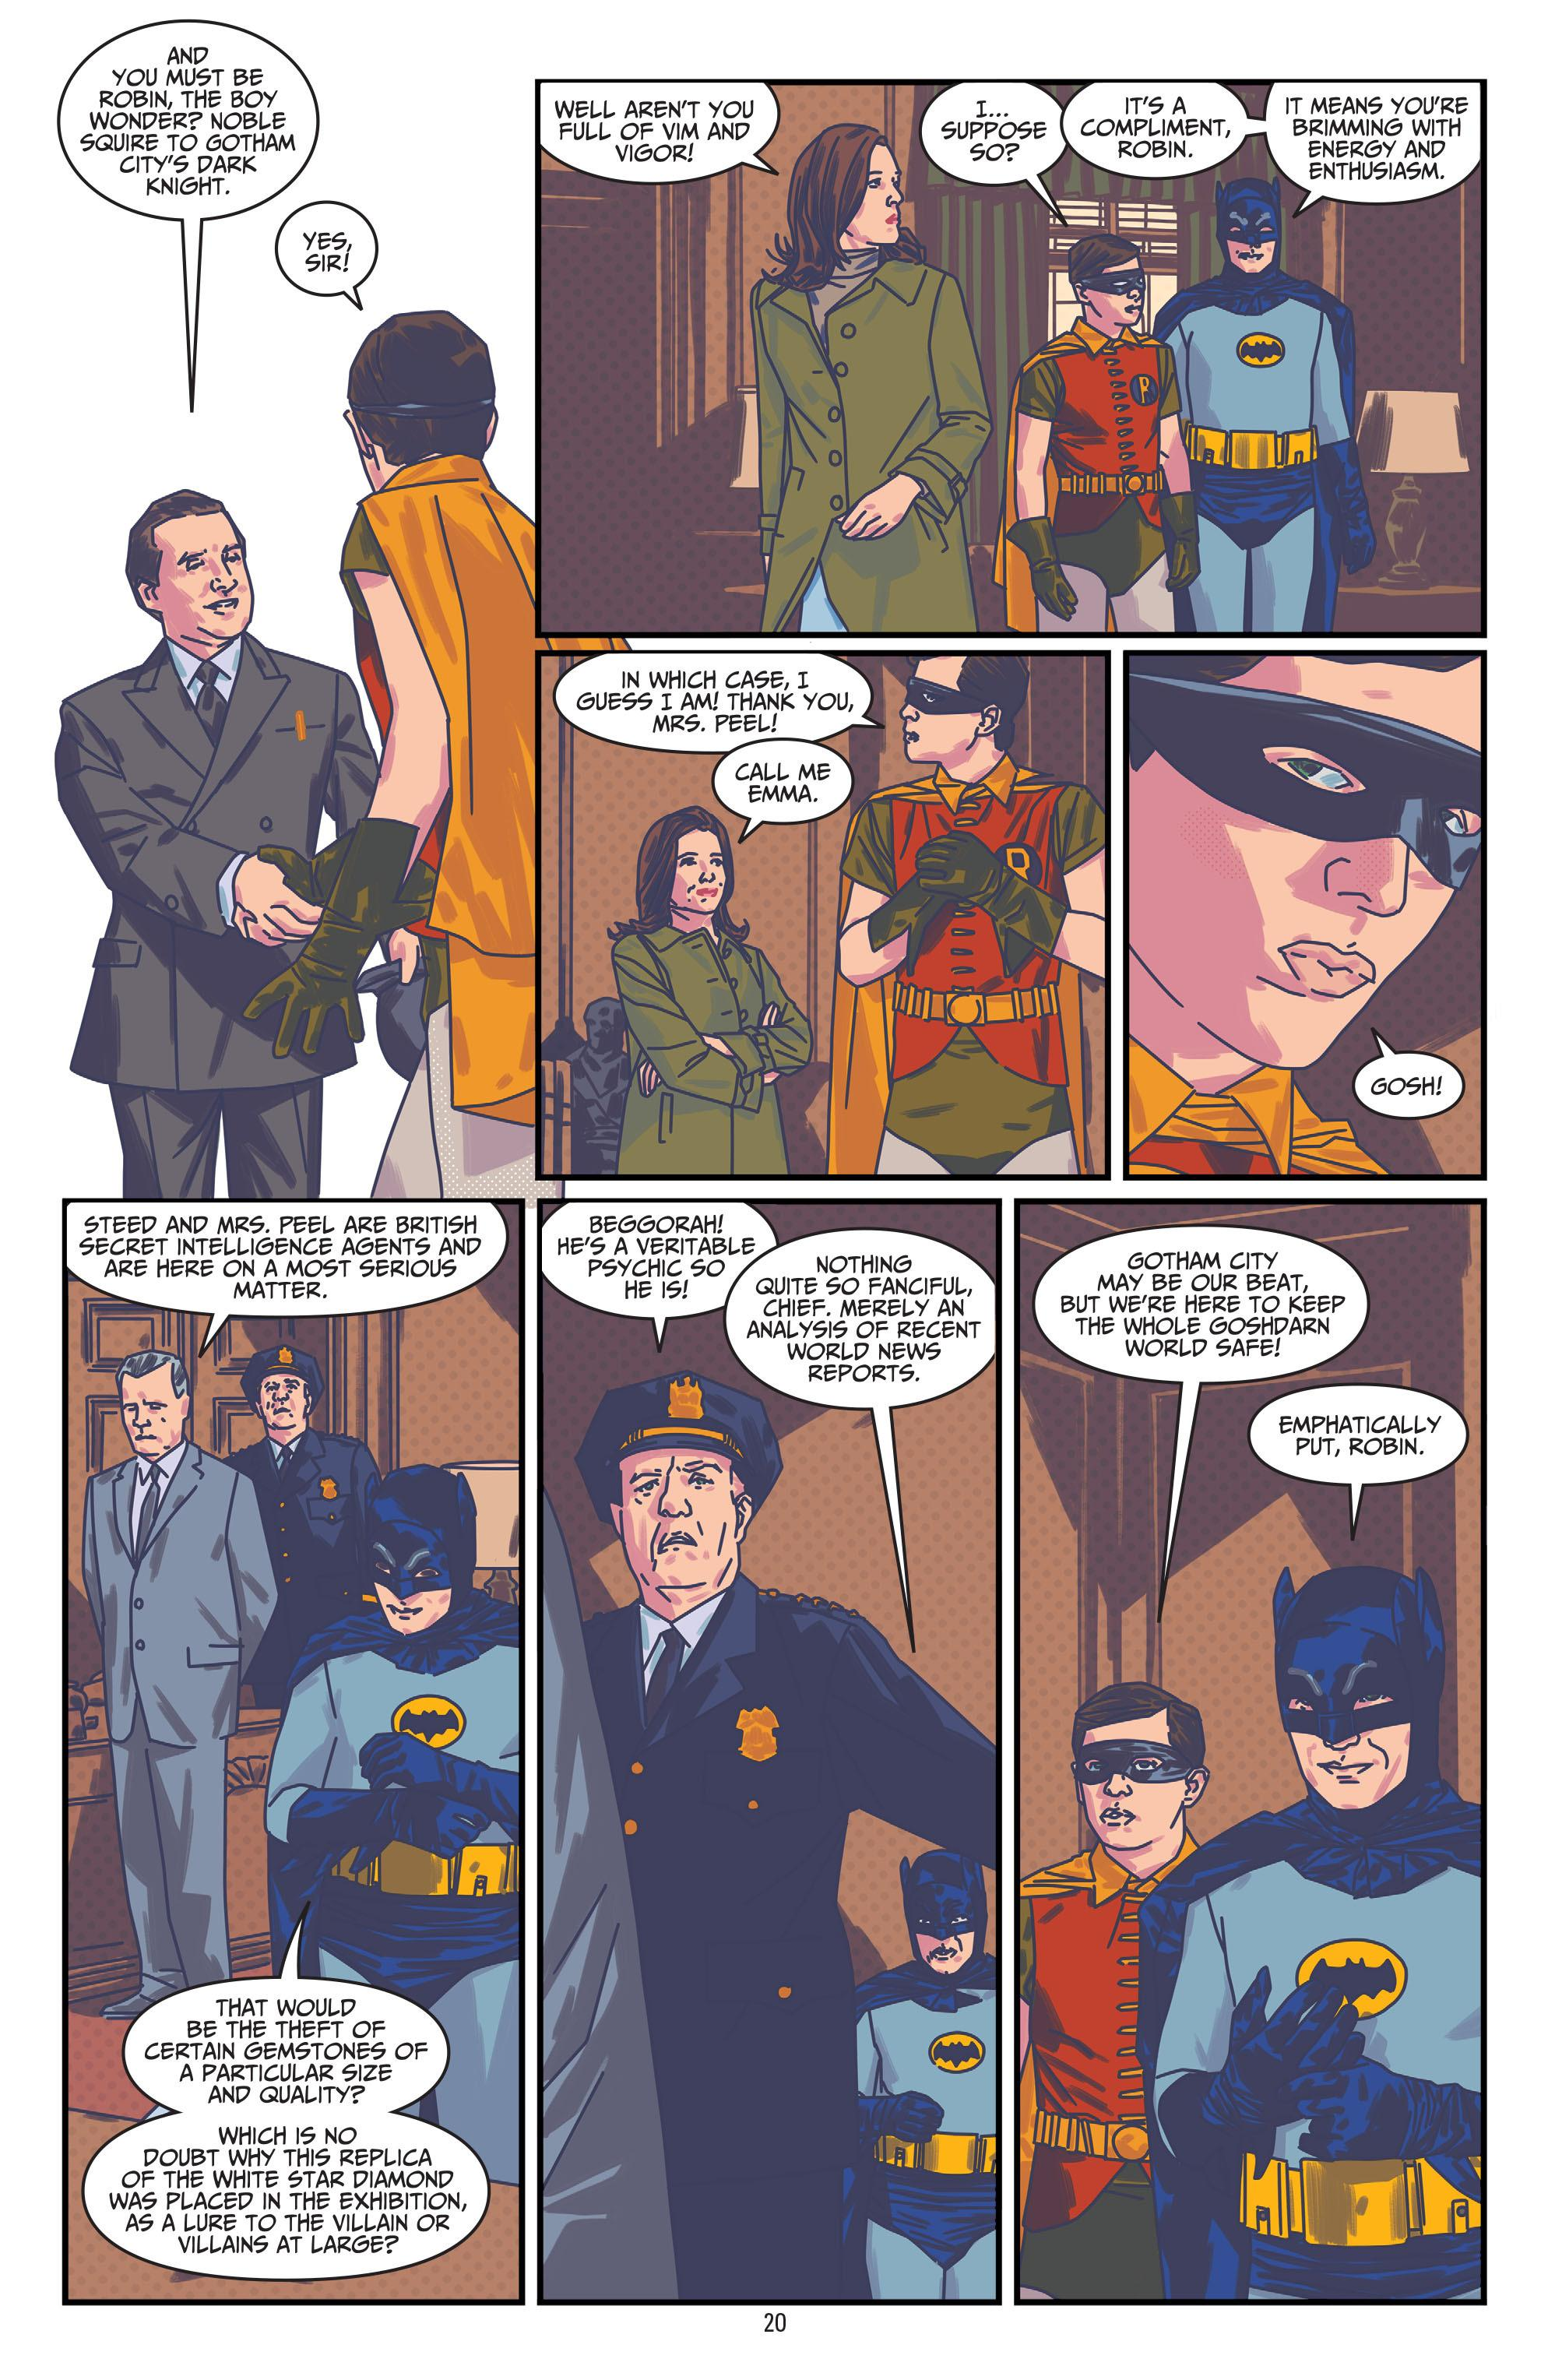 Batman '66 Meets Steed and Mrs. Peel review